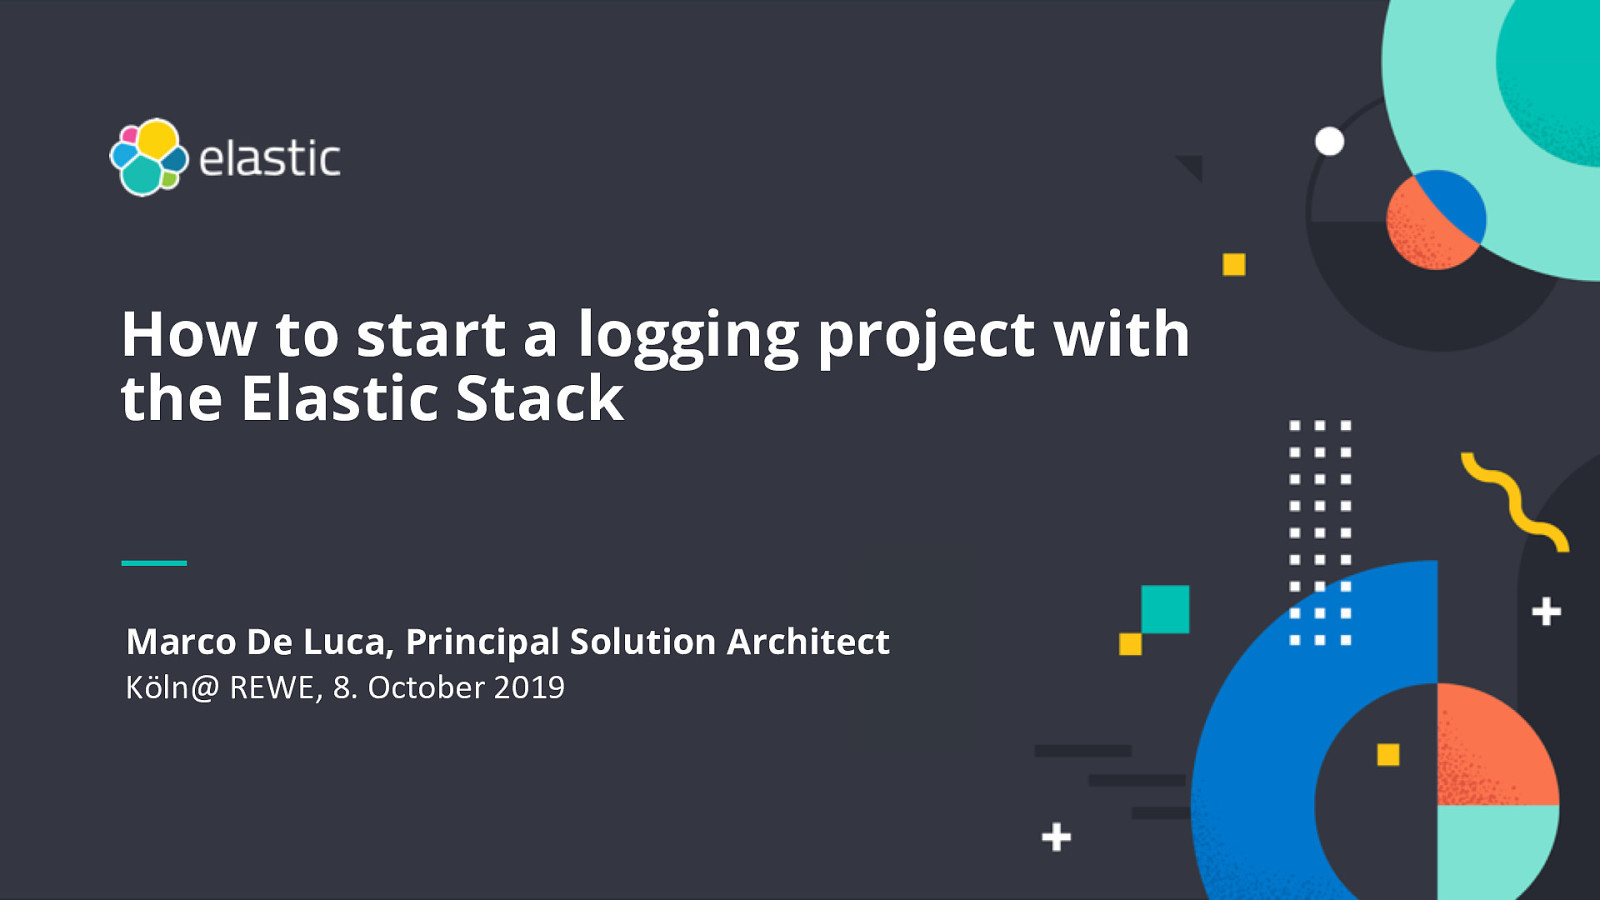 How to start a logging project